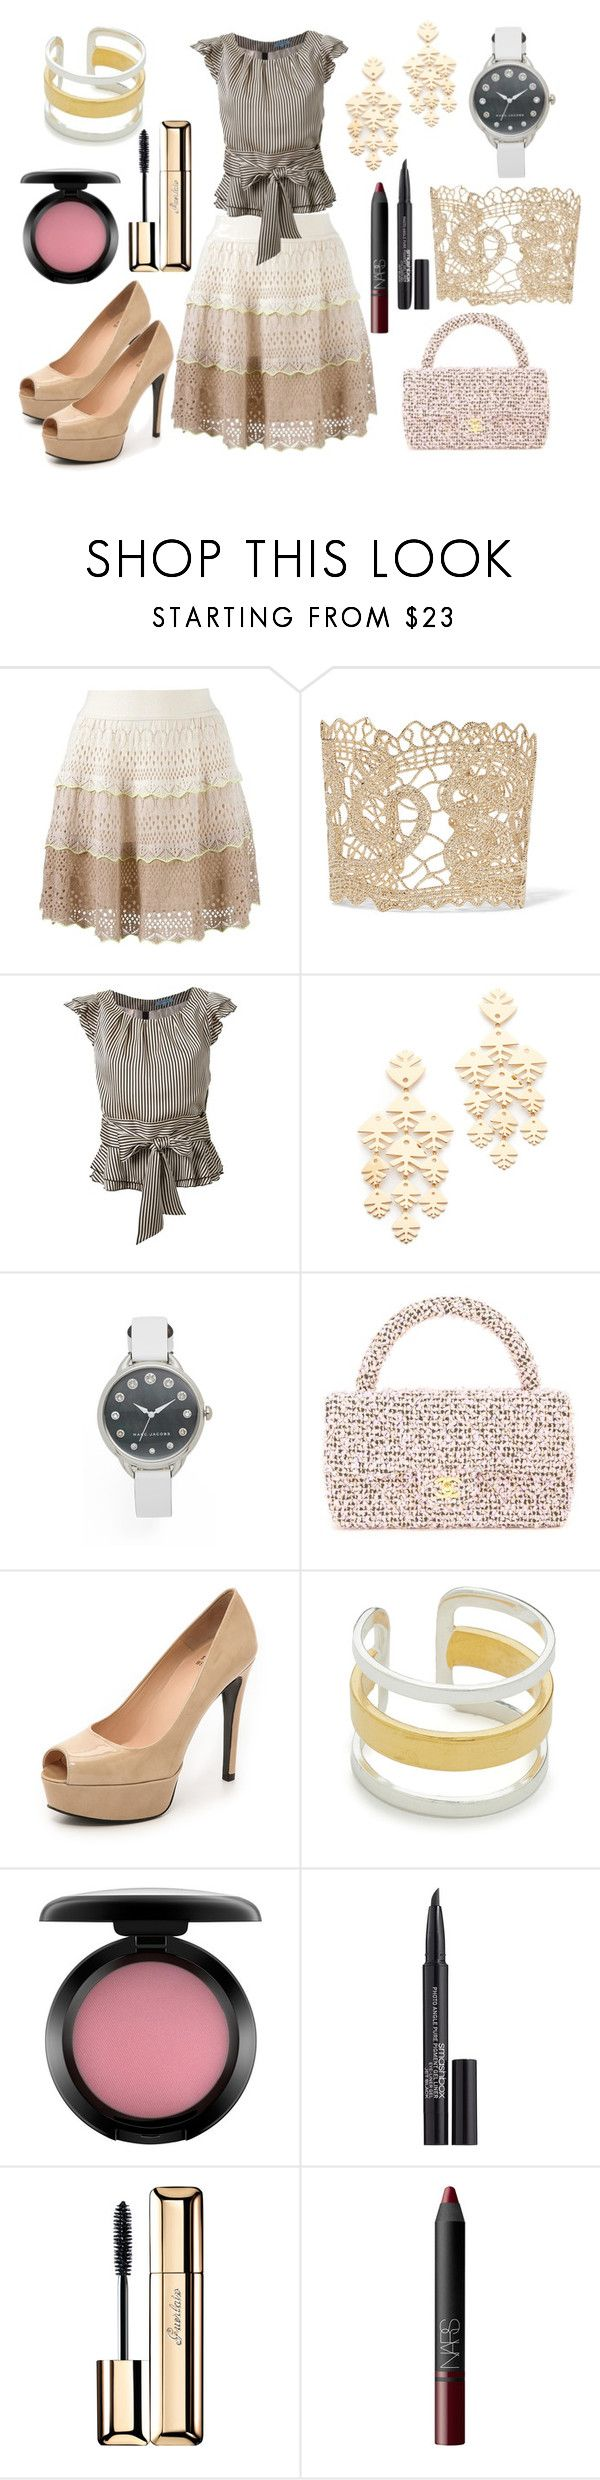 """Simple skirty"" by hillarymaguire ❤ liked on Polyvore featuring Cecilia Pradomurion, Valentino, Guild Prime, Tory Burch, Marc Jacobs, Chanel, Stuart Weitzman, Maya Magal, MAC Cosmetics and Smashbox"